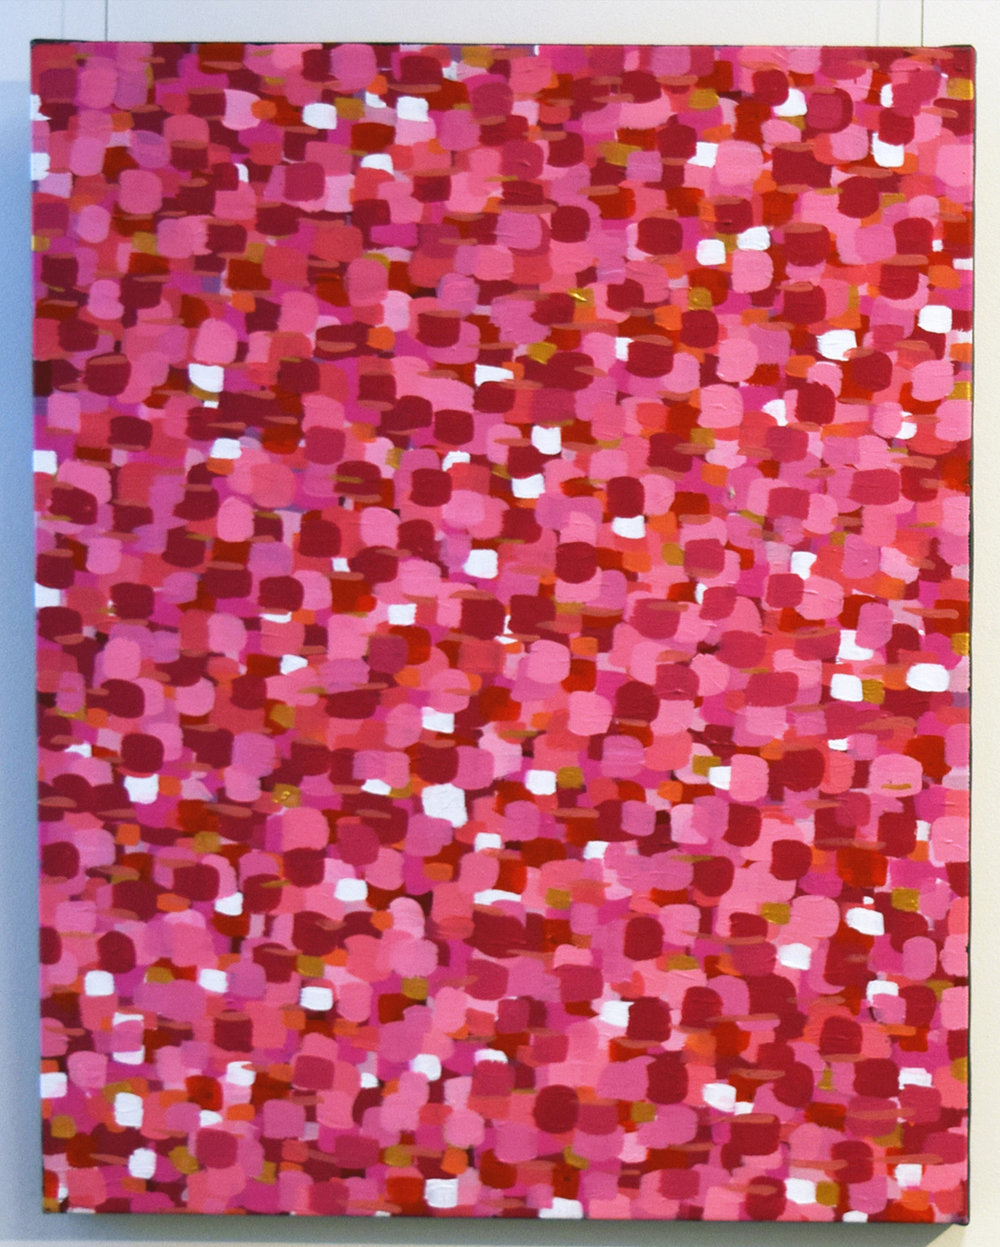 8. Andrea Green-Ugle, 'Pink Everlastings', 2017, acrylic on Belgian linen, $1,120.jpg